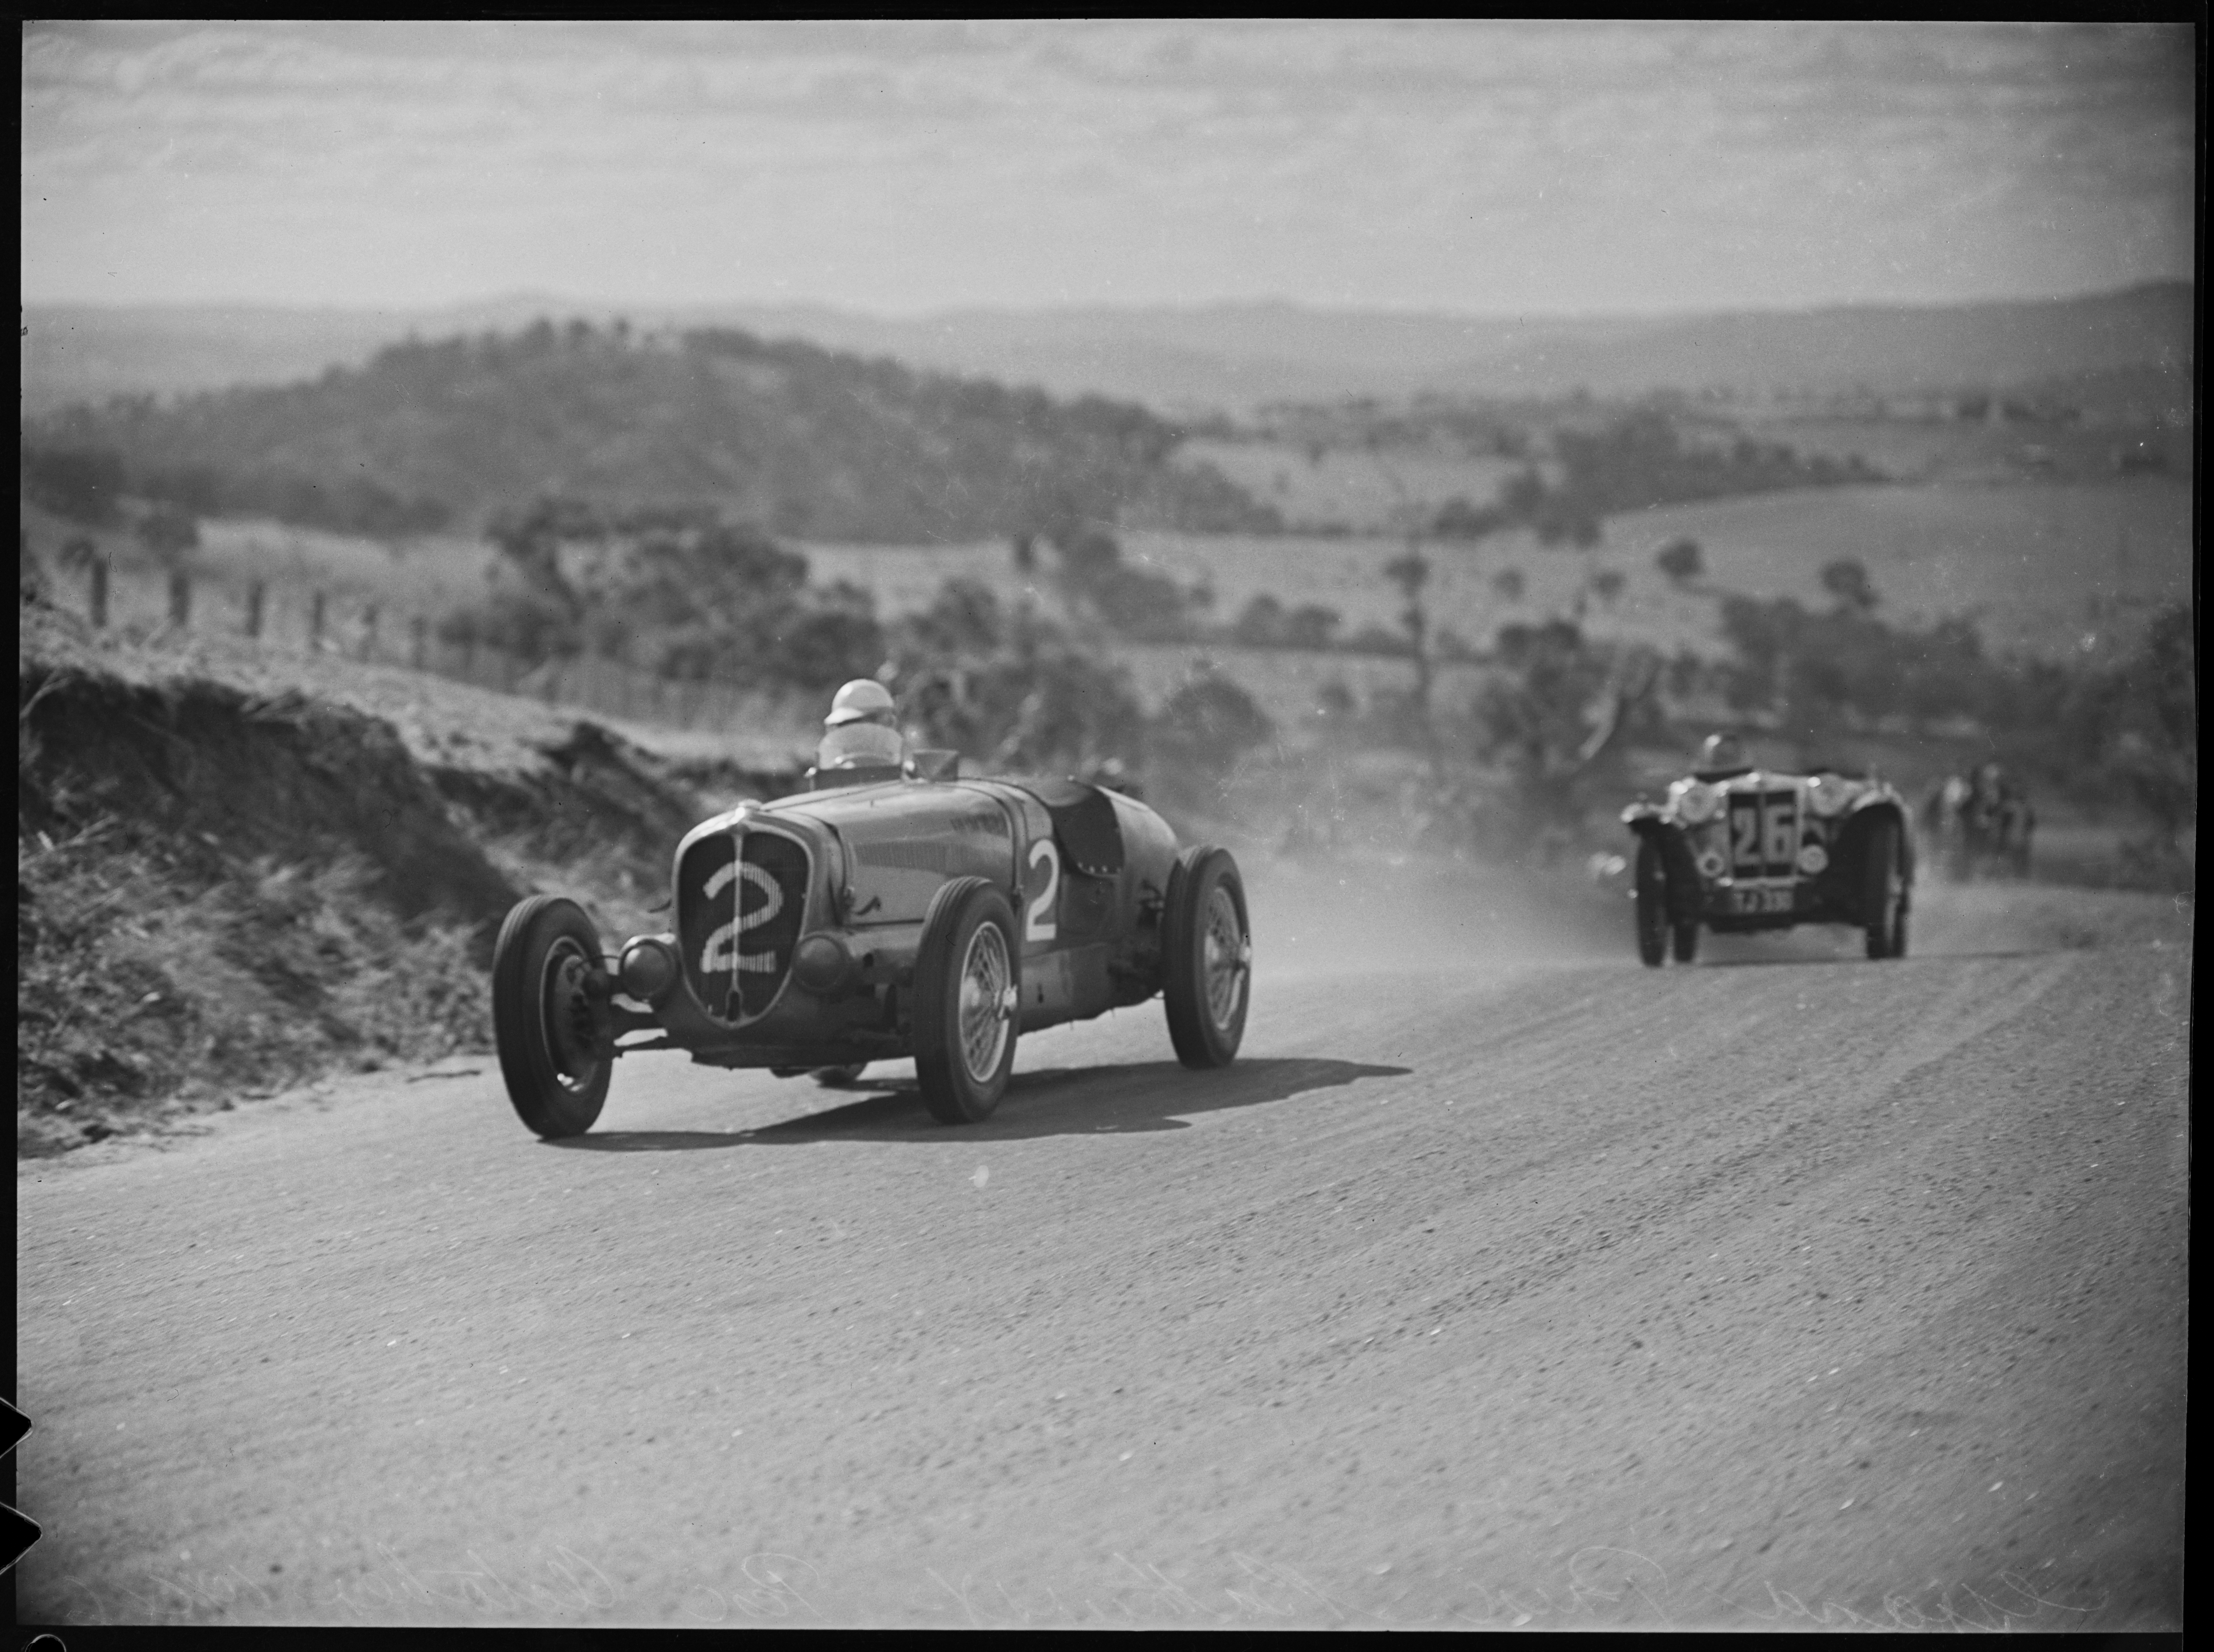 John Crouch in a Delahaye 135 followed by Alby Johnson in a an MG TC, Grand Prix, Bathurst, October 1946